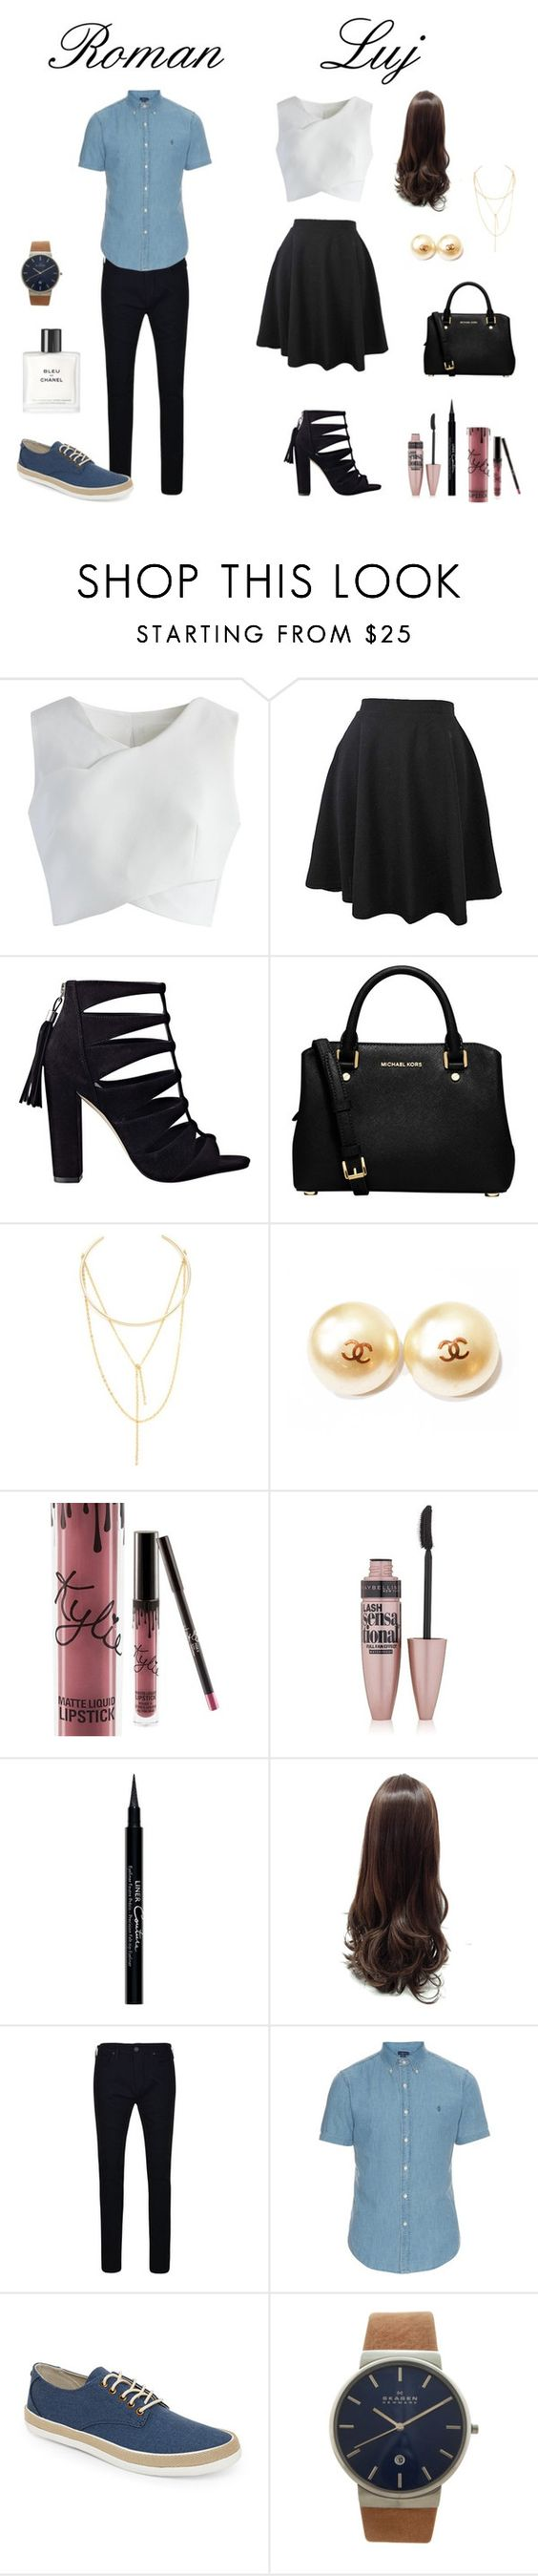 """""""Sin título #6"""" by lujbris ❤ liked on Polyvore featuring Chicwish, MICHAEL Michael Kors, Jules Smith, Chanel, Kylie Cosmetics, Maybelline, Givenchy, True Religion, Polo Ralph Lauren and Original Penguin"""